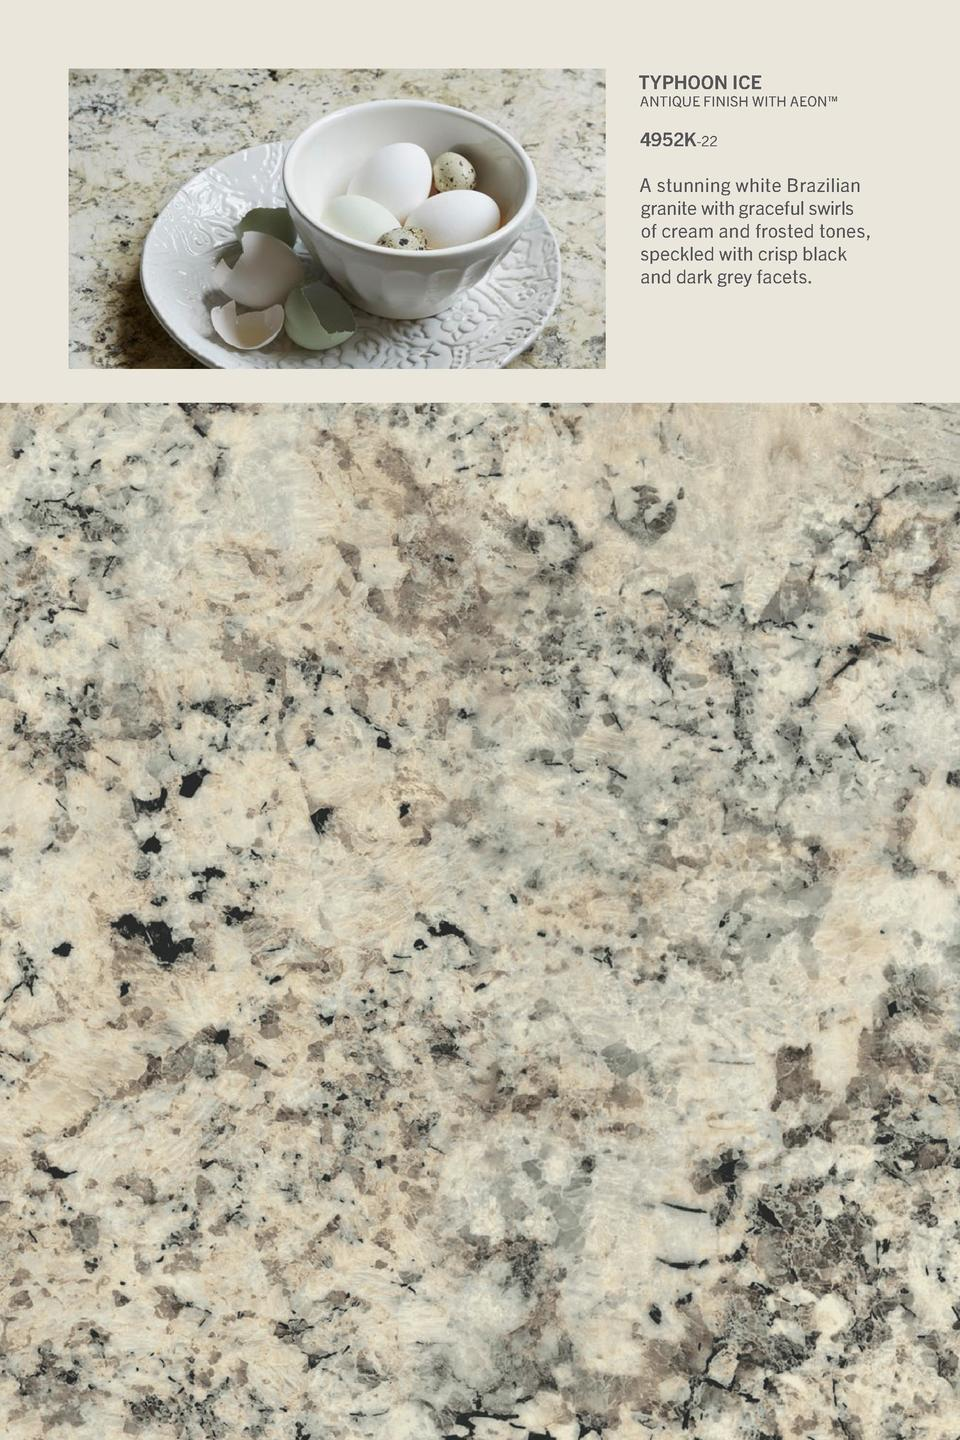 Typhoon Ice  Antique Finish With Aeon     4952K-22 A stunning white Brazilian granite with graceful swirls of cream and fr...